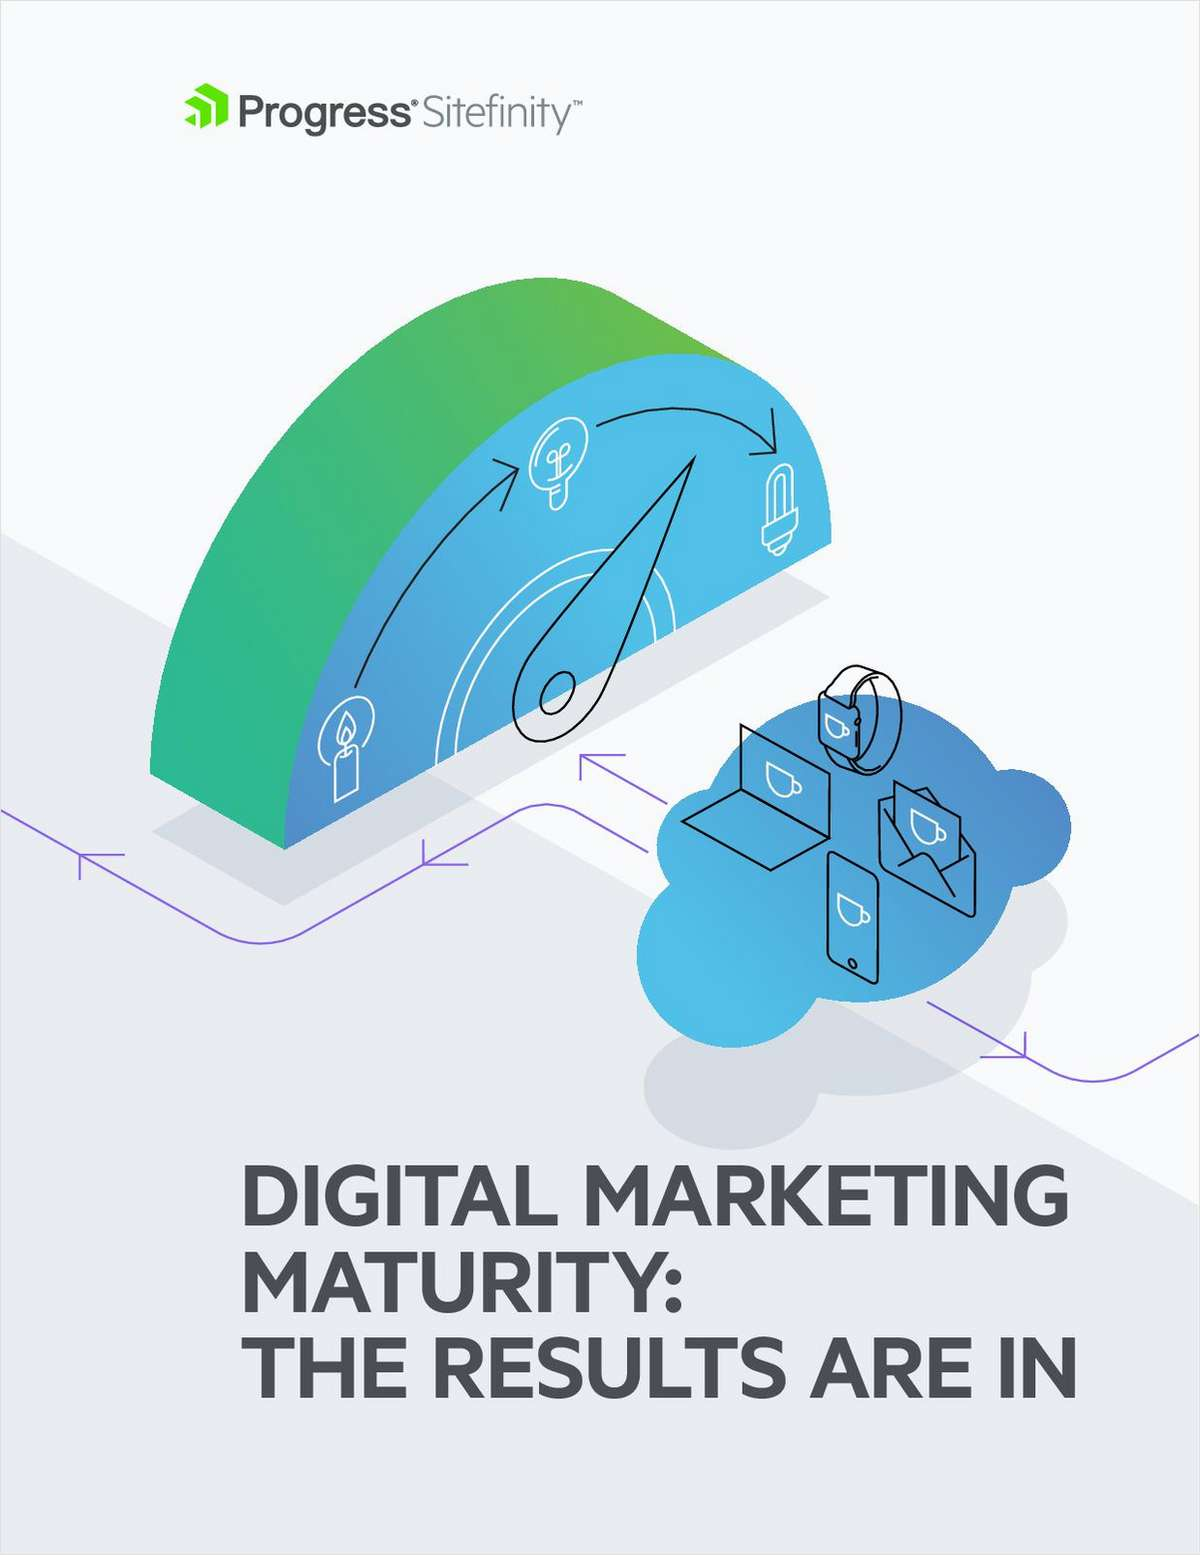 Digital Marketing Maturity: The Results are In